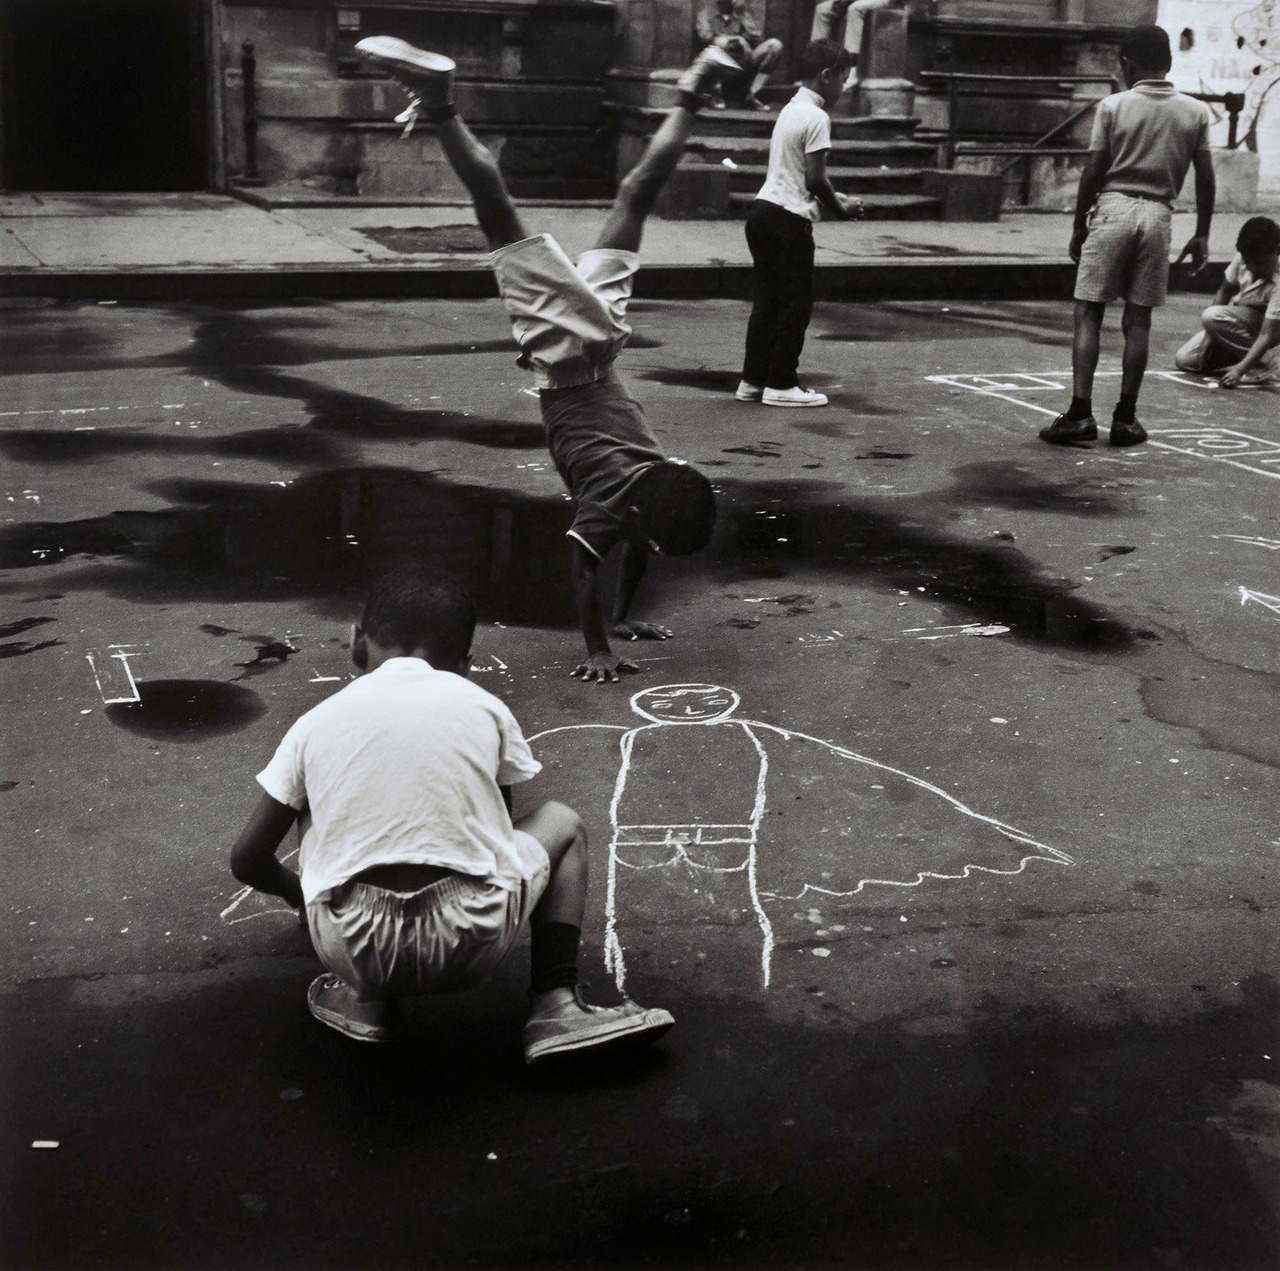 Children at Play, Photo by Hiram Maristany, 1965